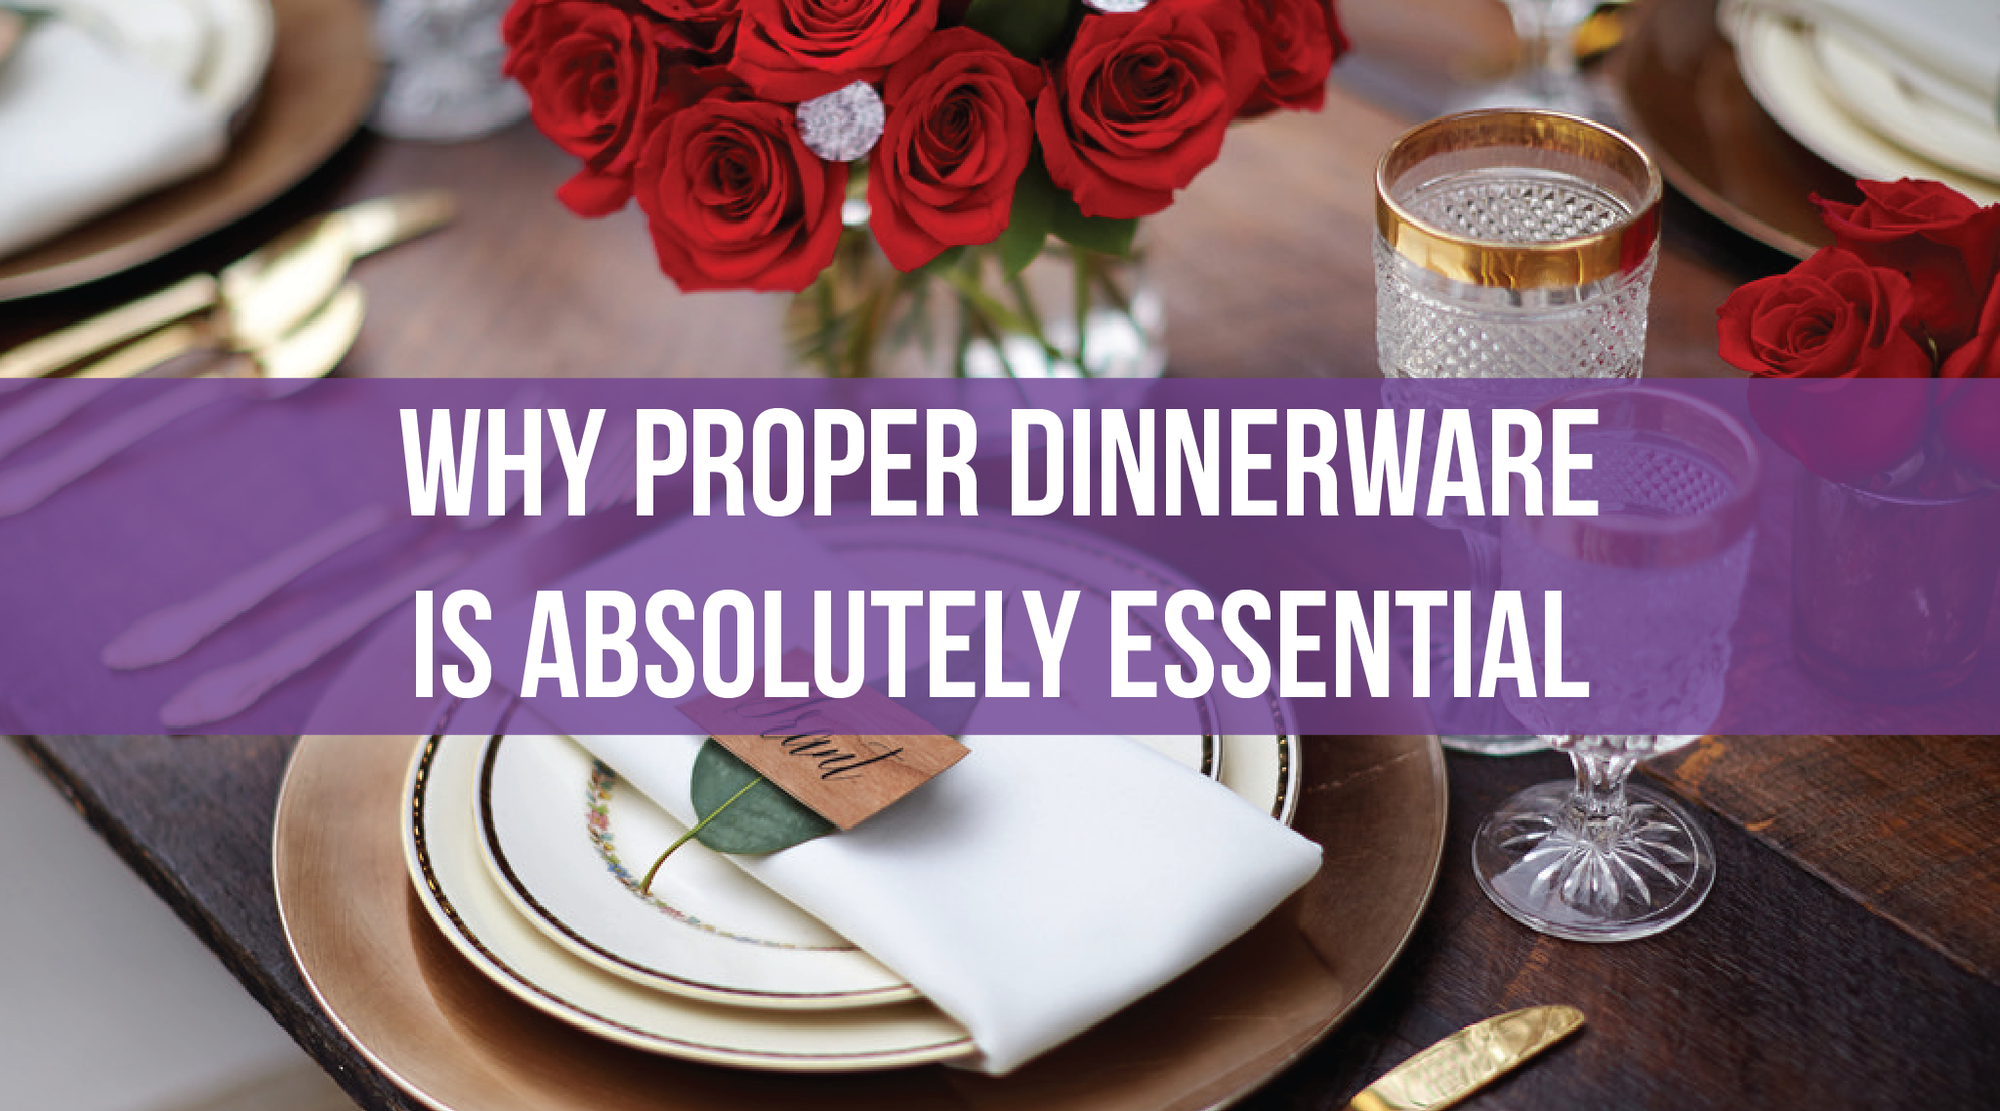 Why Proper Dinnerware is Absolutely Essential